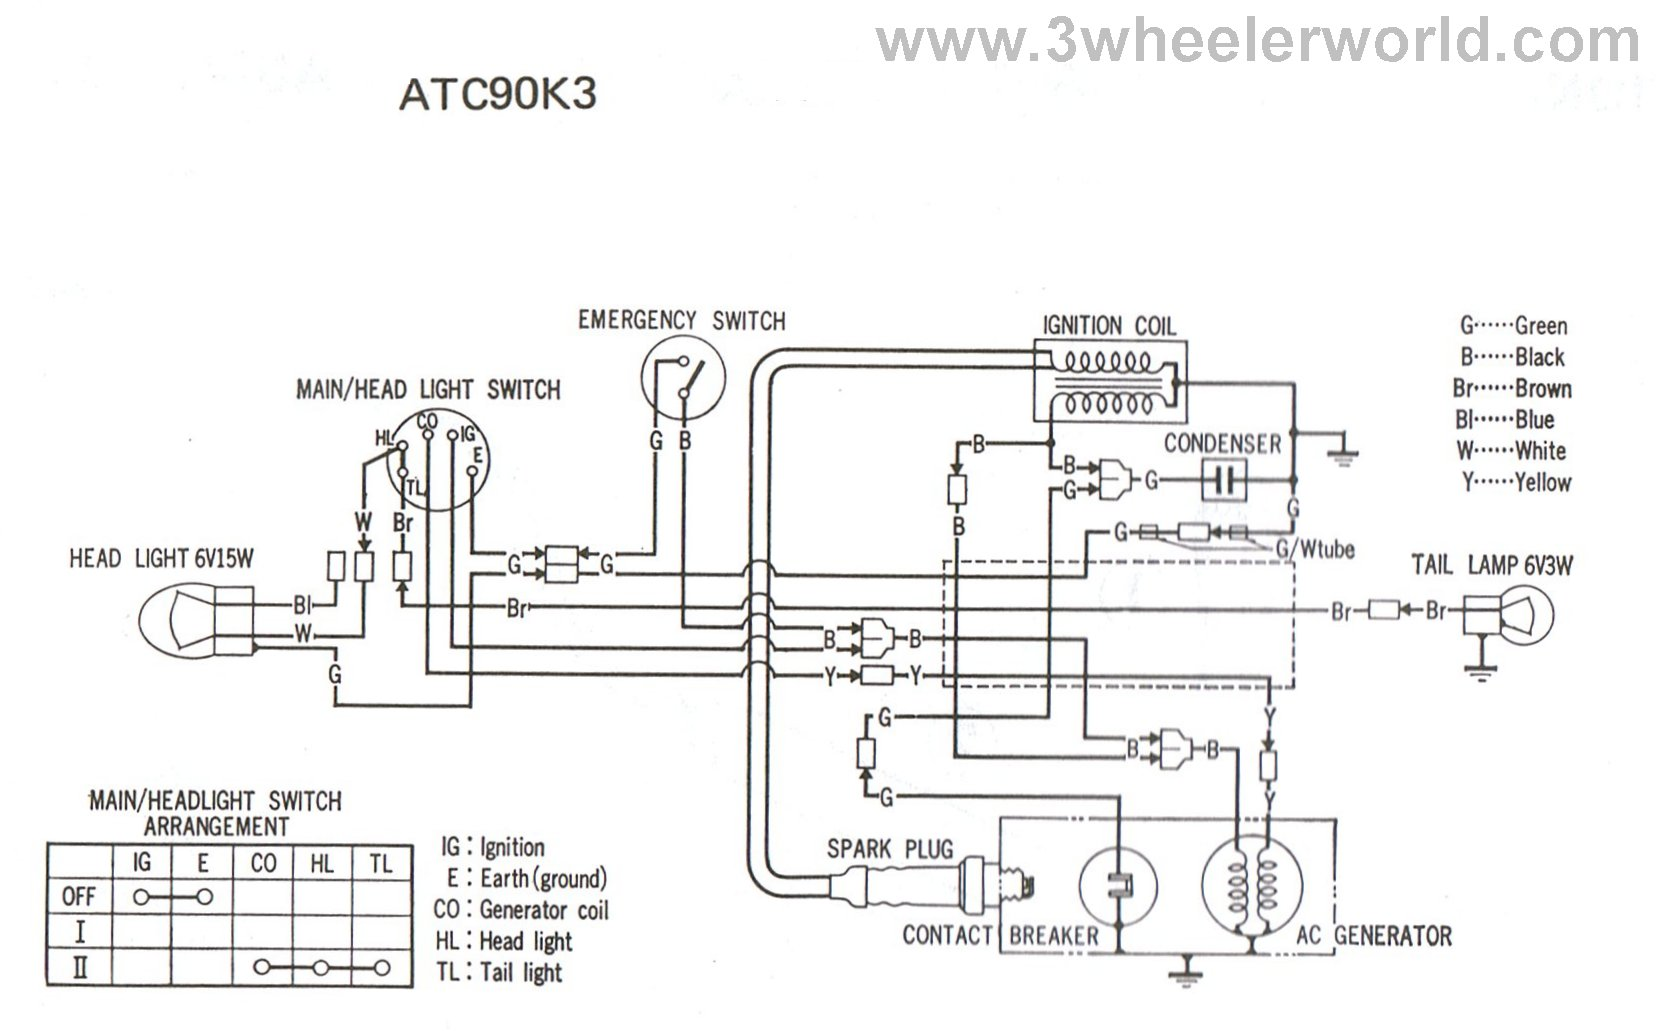 ATC90K3HM 90 atv wiring diagram honda wiring diagrams instruction atc 300 wiring diagram at edmiracle.co